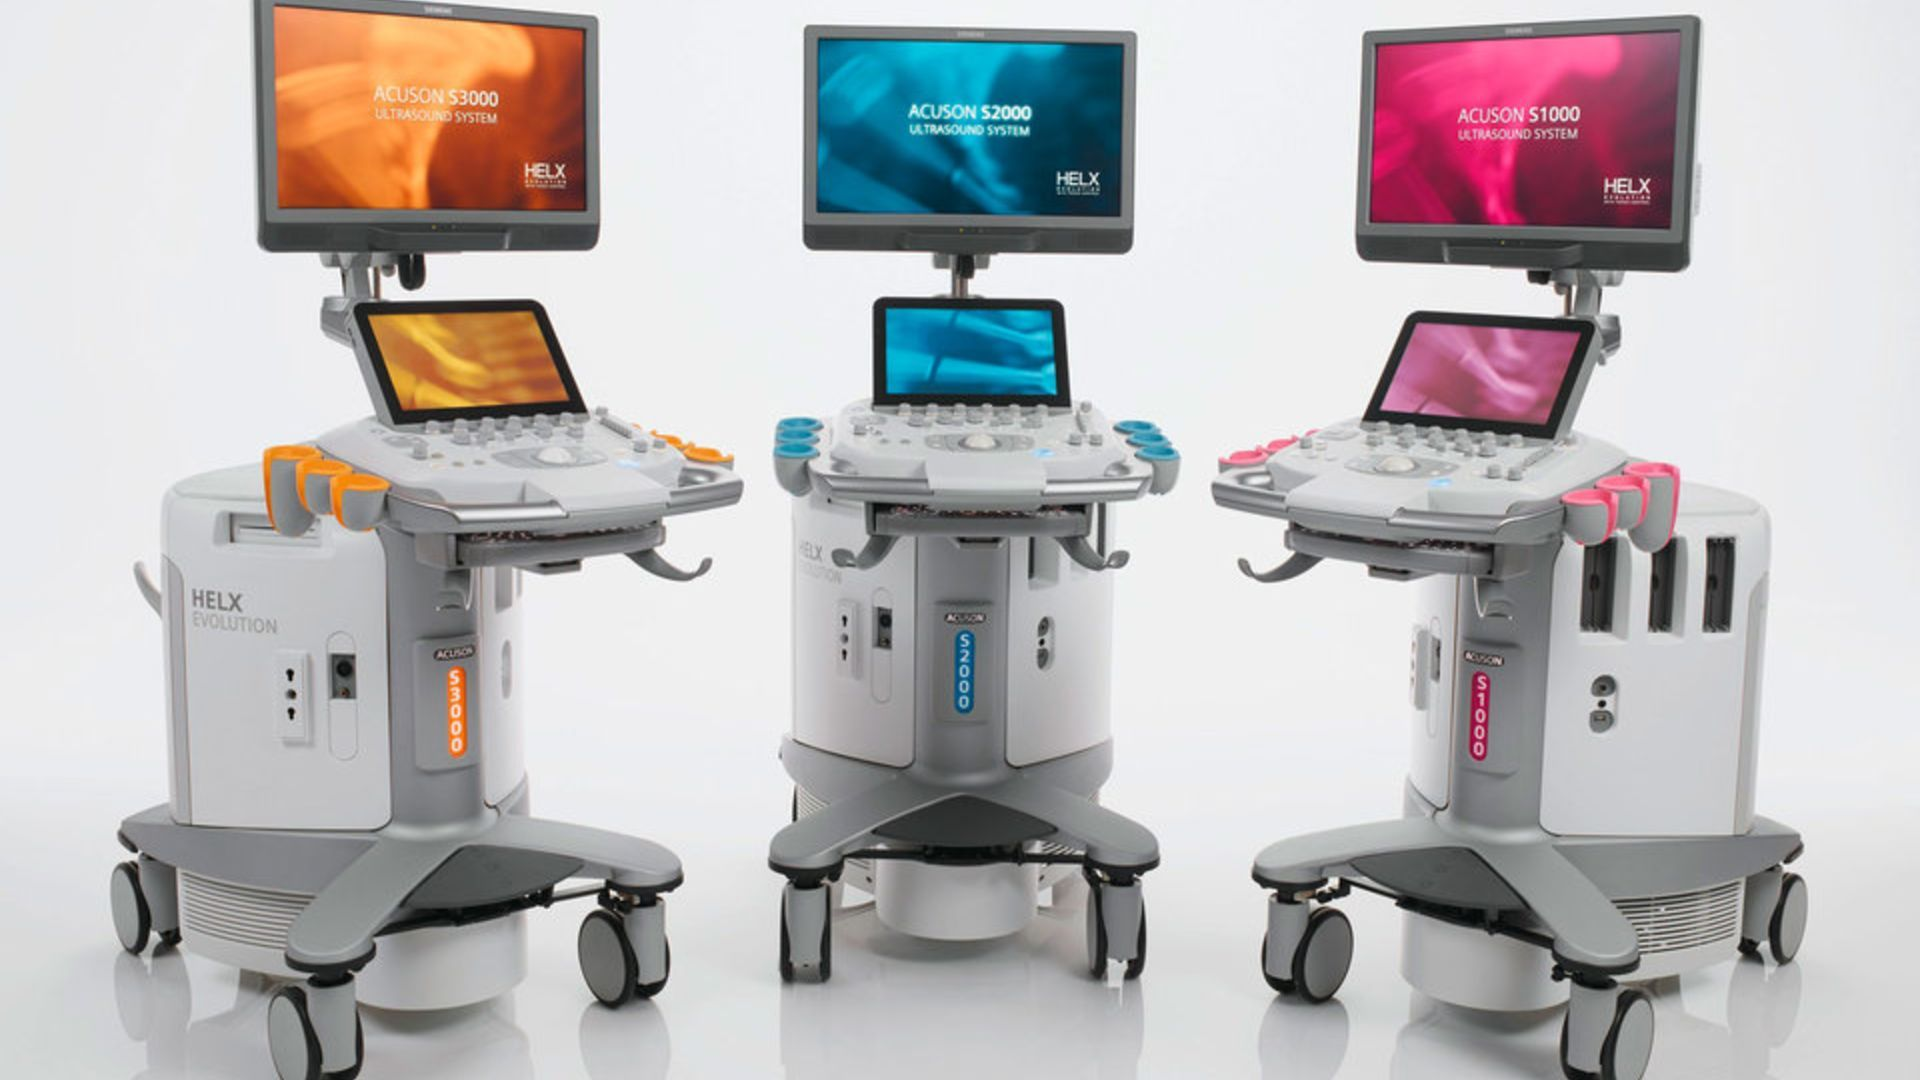 acuson_s_family_ultrasound_system_helx_evolution_with_touch_control-02422915_10-06551665_8